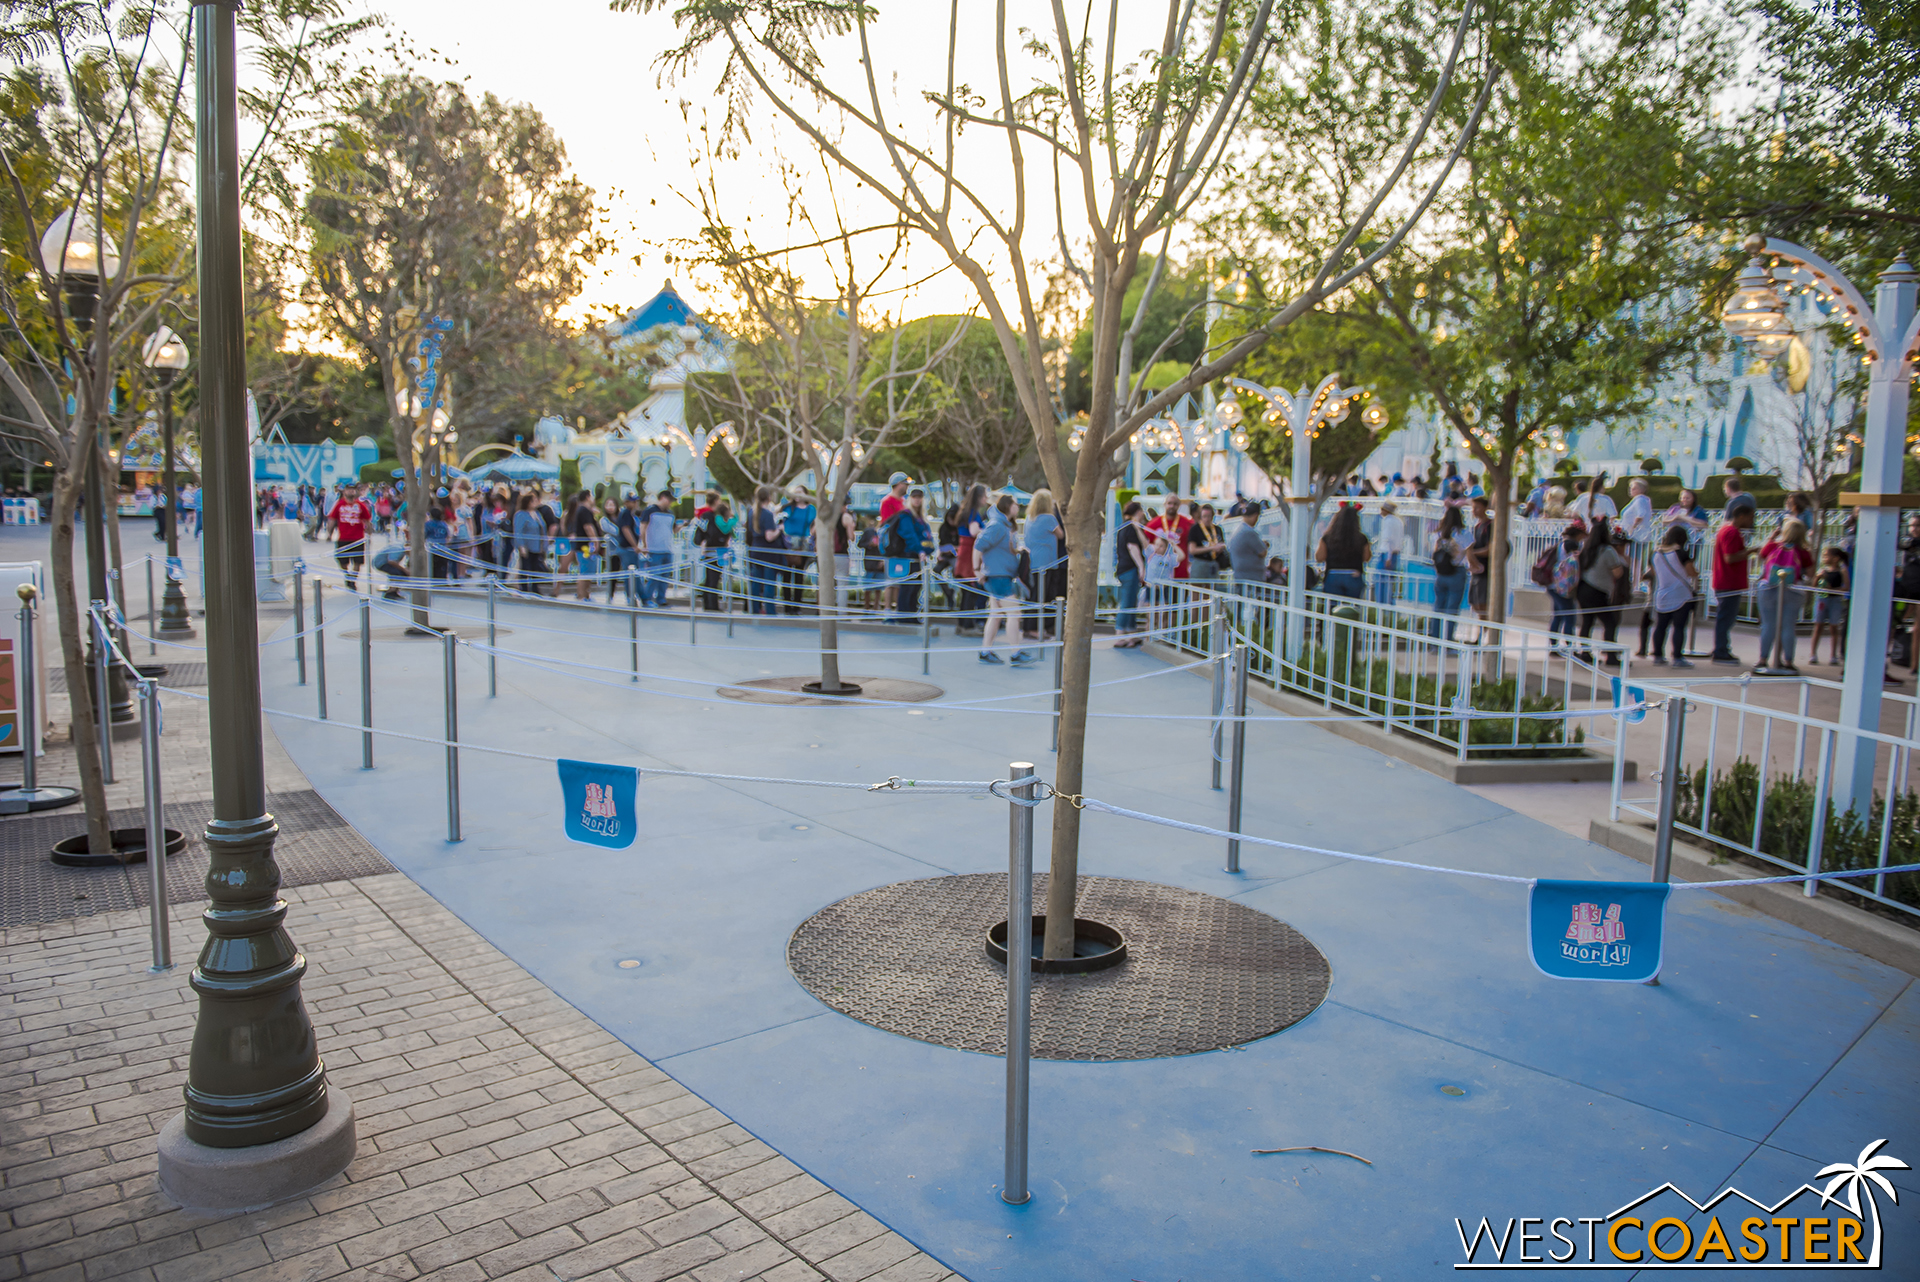 It's spiffy! And definitely improves the previous condition of guests spilling onto the parade corridor.